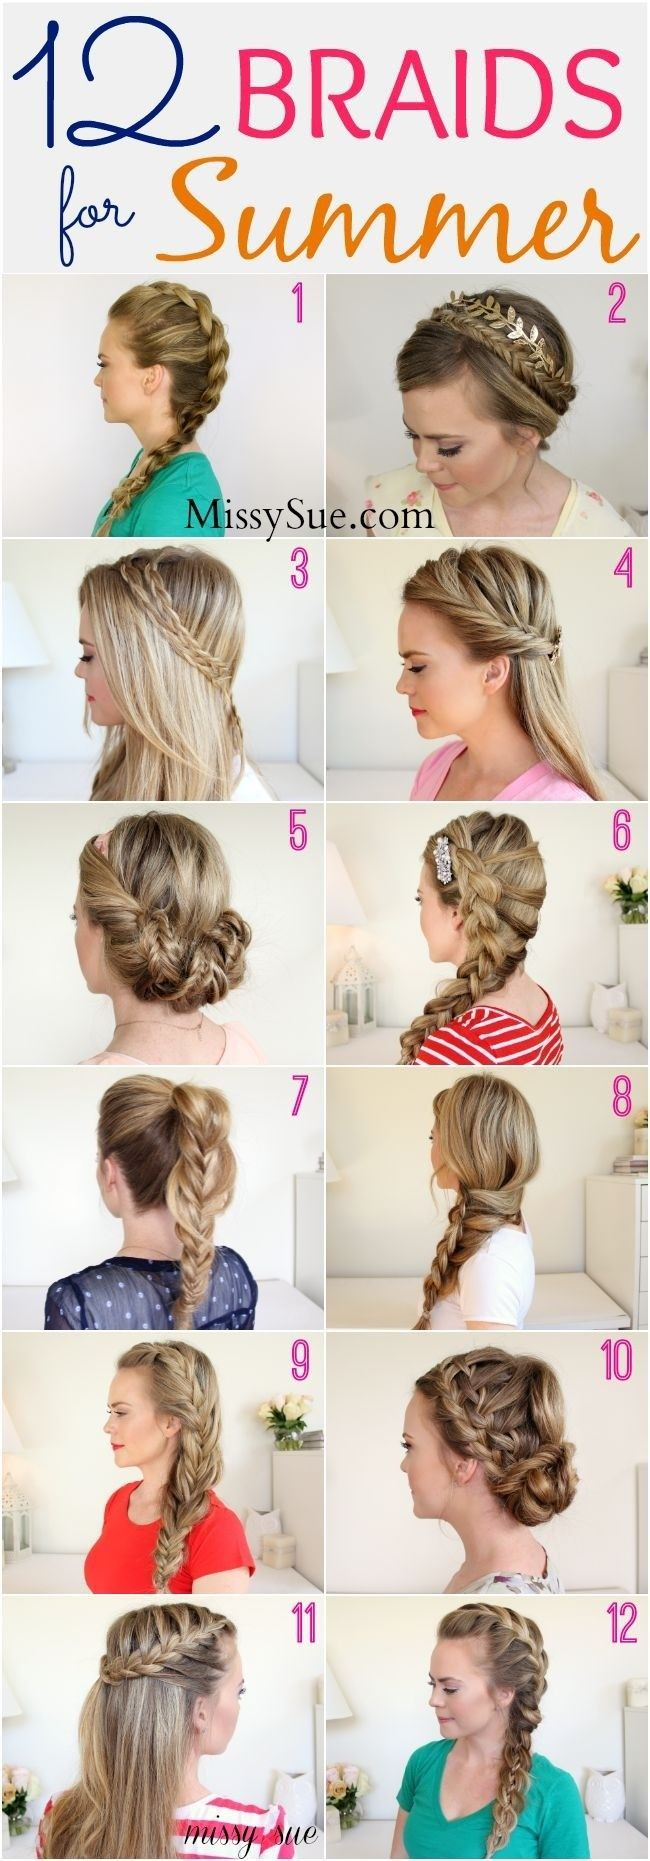 Braided hairstyle looks charming and luscious. If you want to add some special factors to your hair, you can try out the braided hairstyle. In this article, we will list you some impressive braided hairstyle. Rope Braid This charming braided hairstyle works greatly on long curly or straight hair. The rope braid is drawn across[Read the Rest]